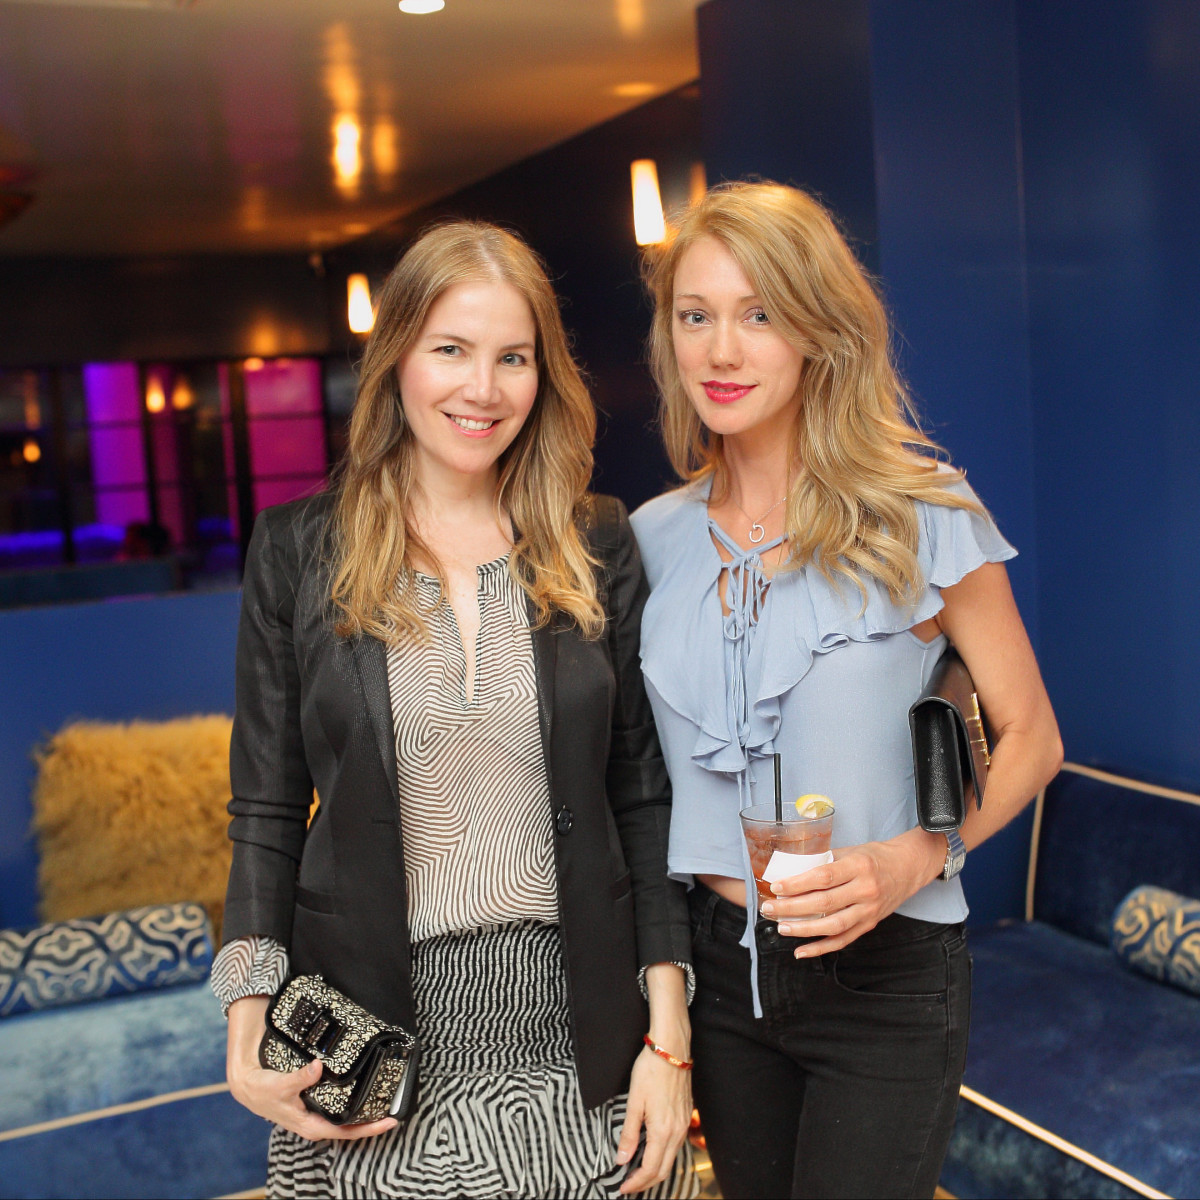 Bar Bleu opening, 6/16, Lilian Rendon, Leslie Sharp